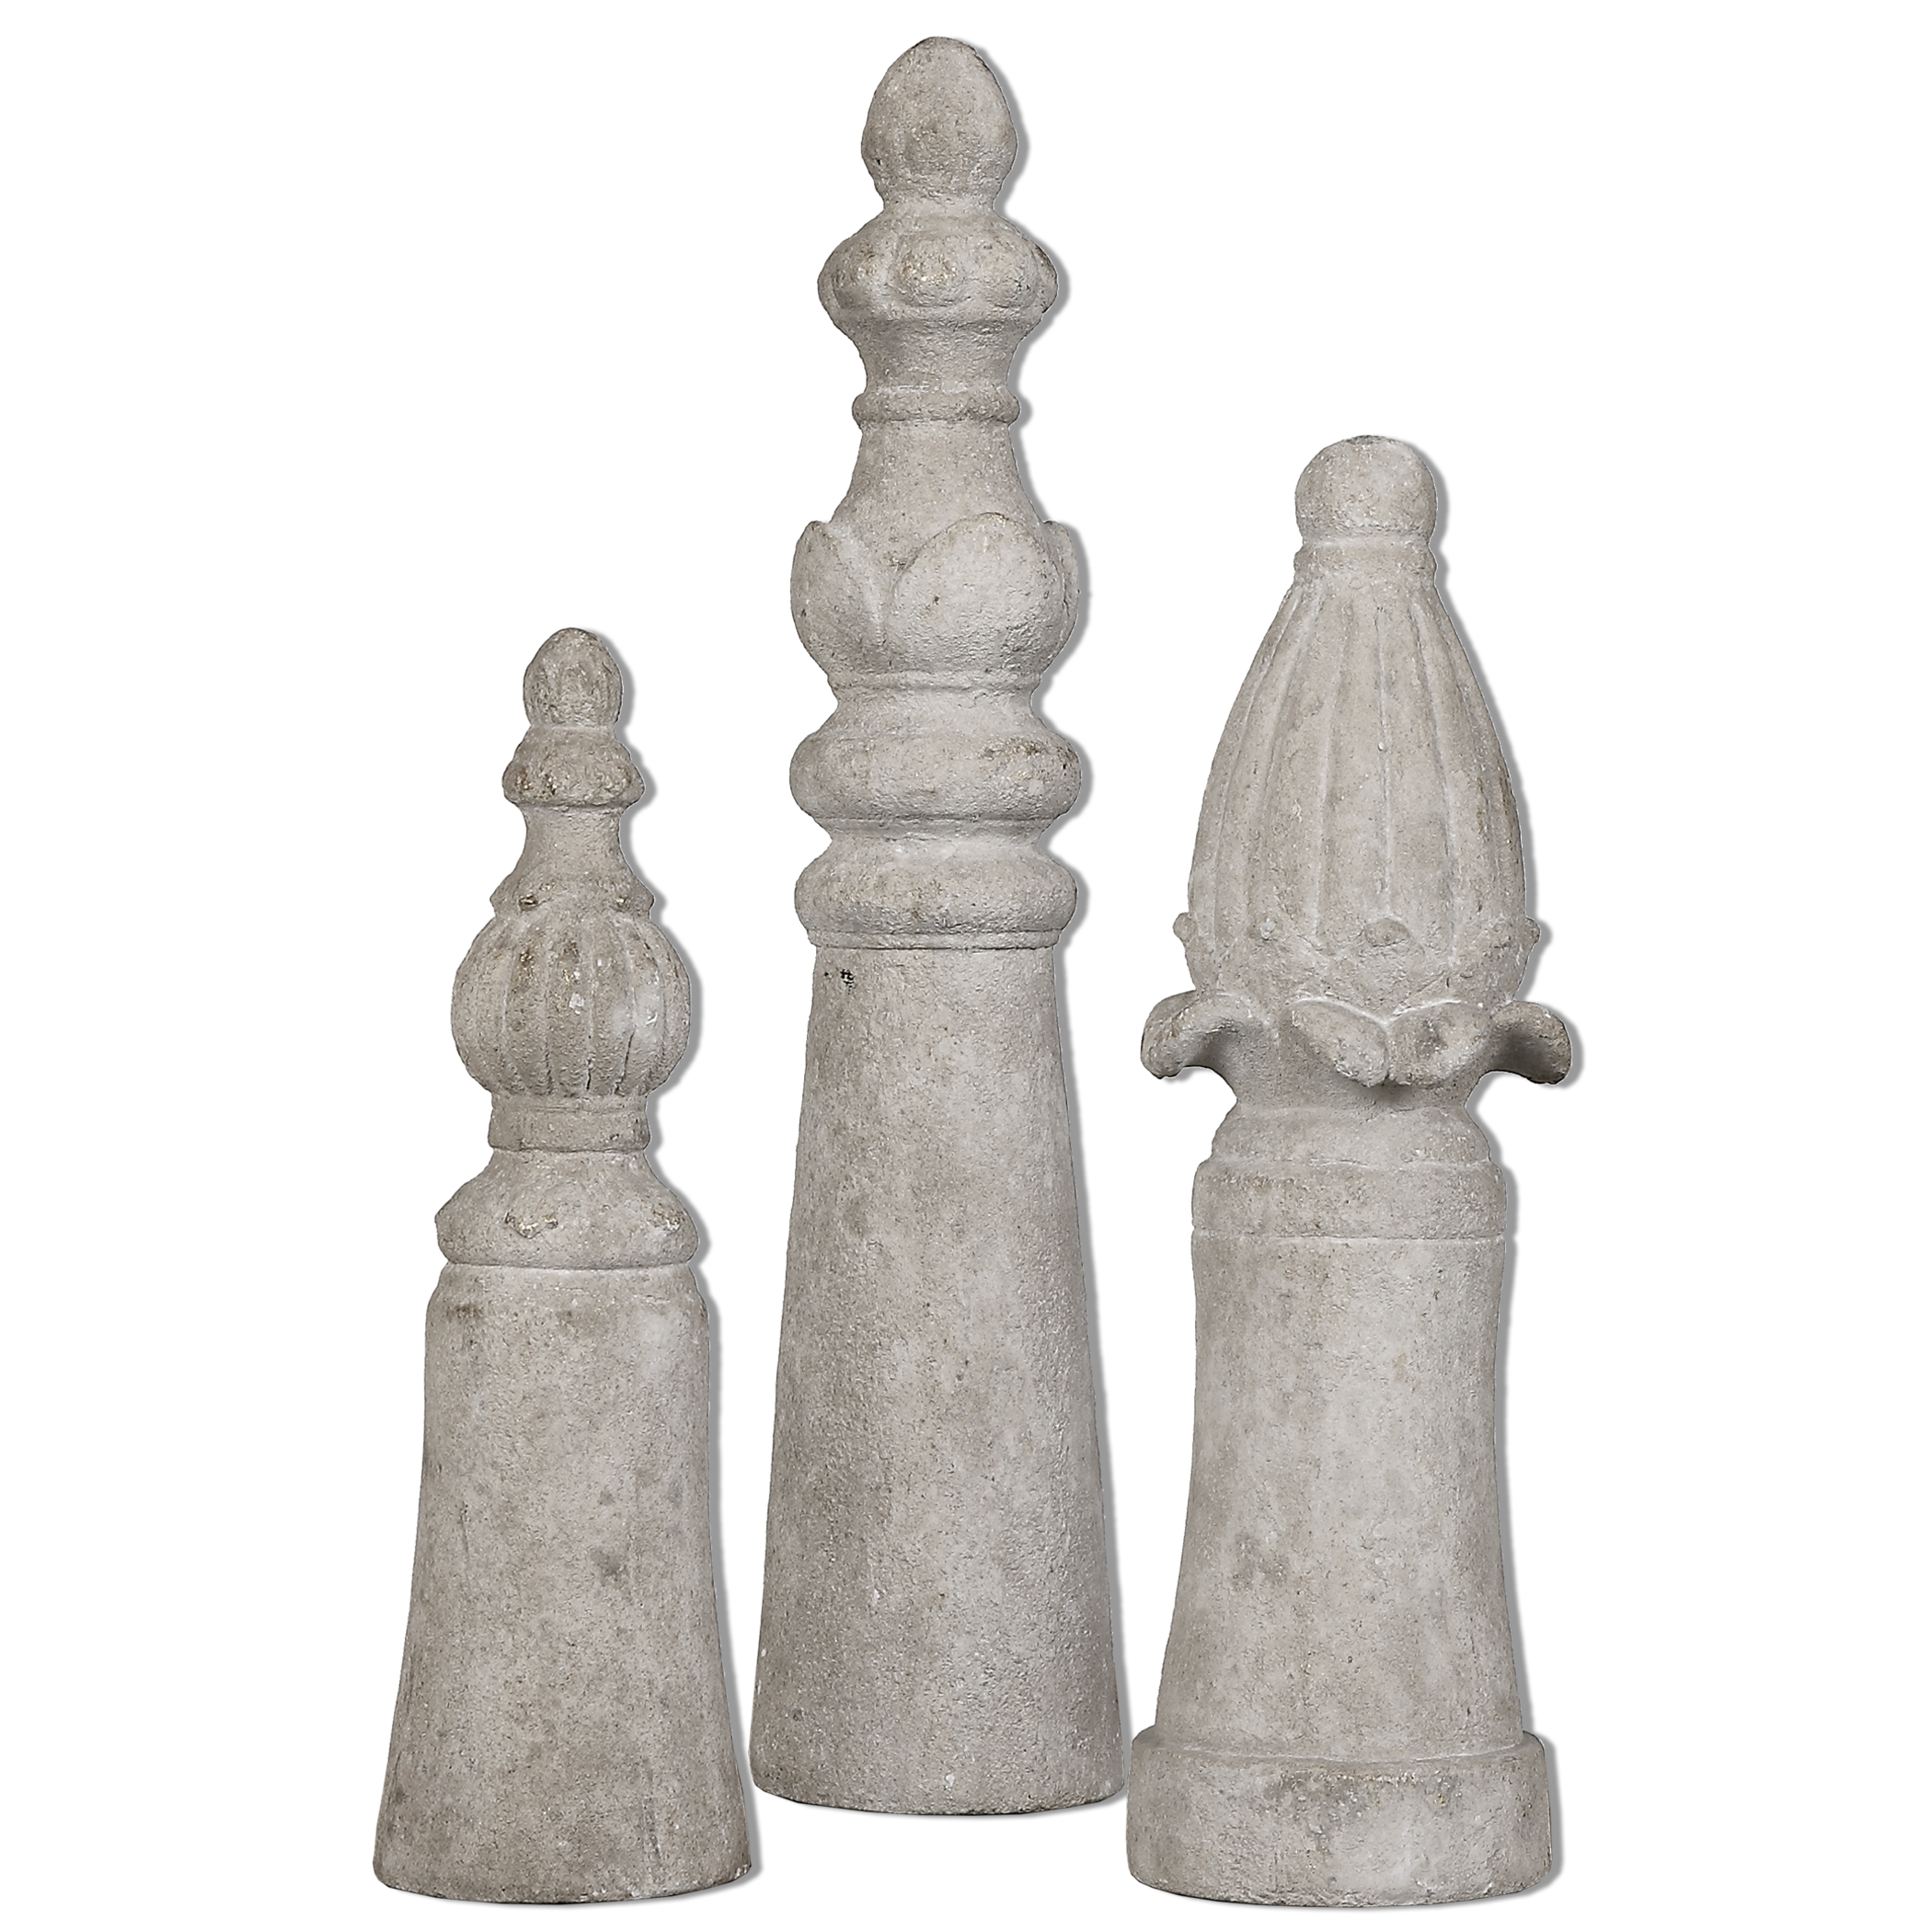 Uttermost Accessories Asmund Aged Ivory Finials S/3 - Item Number: 19988